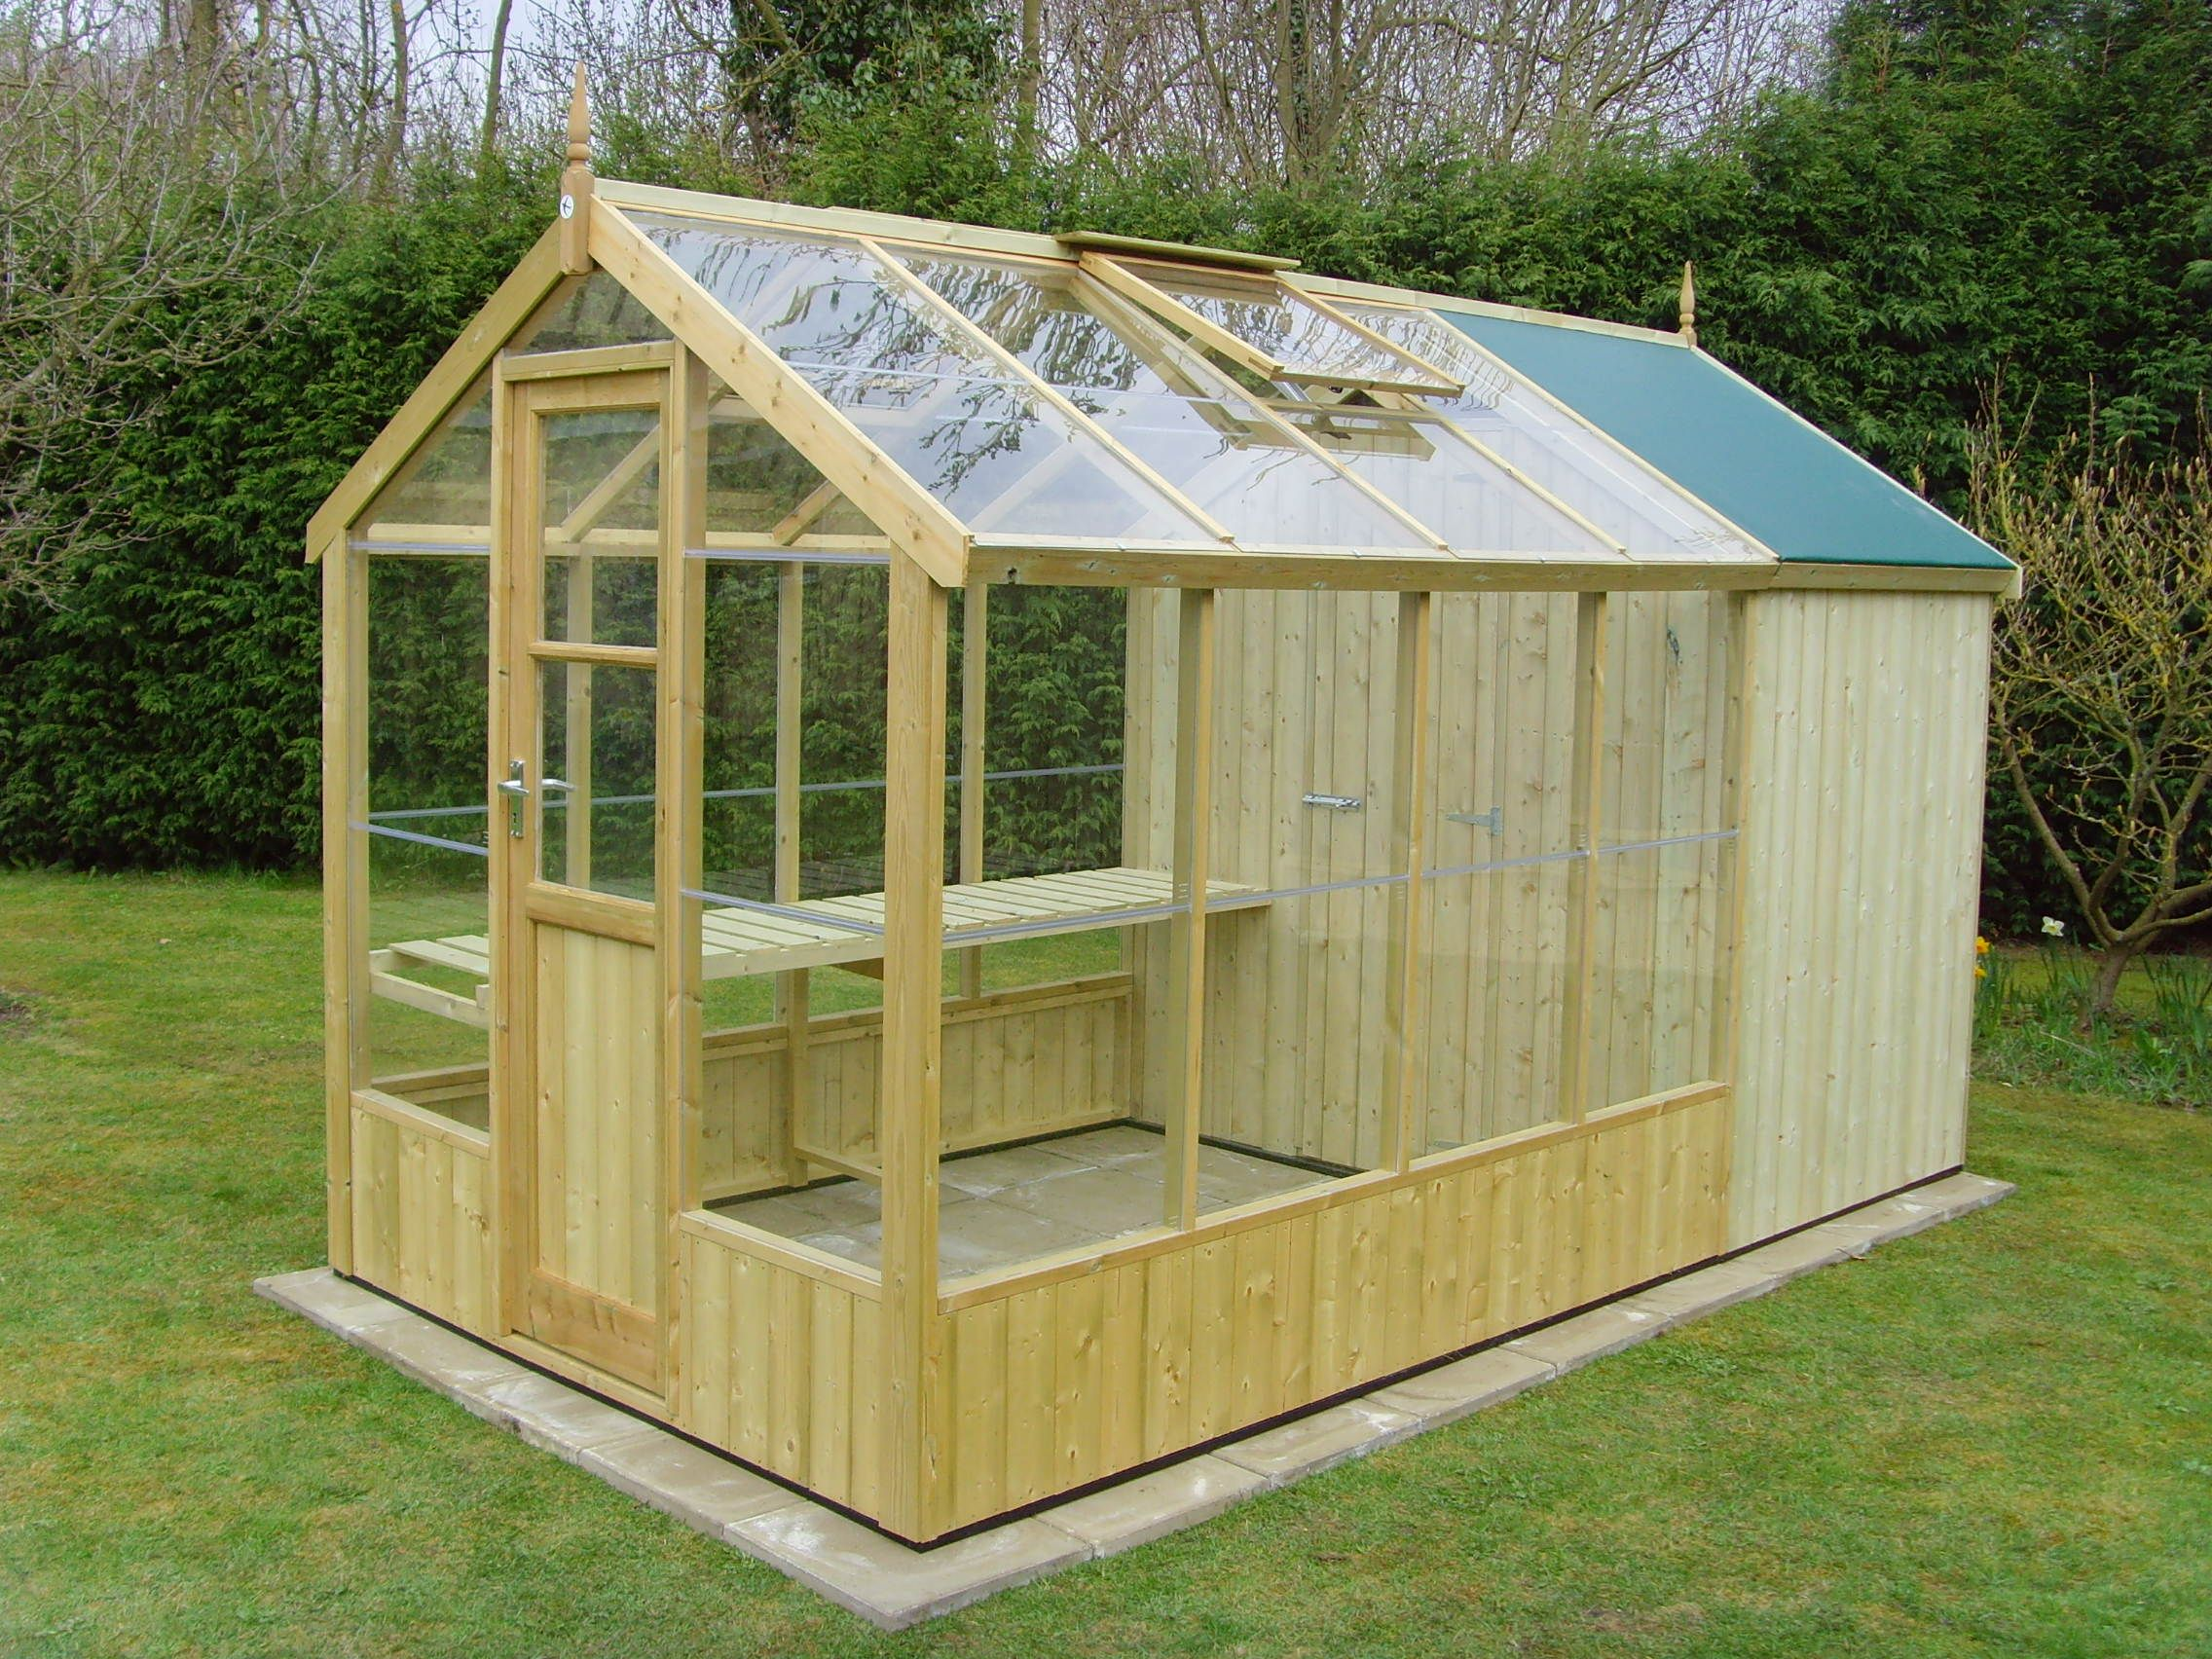 Garden Sheds Ohio 20 x 10 garden shed greenhouses in ohio must see | desk work